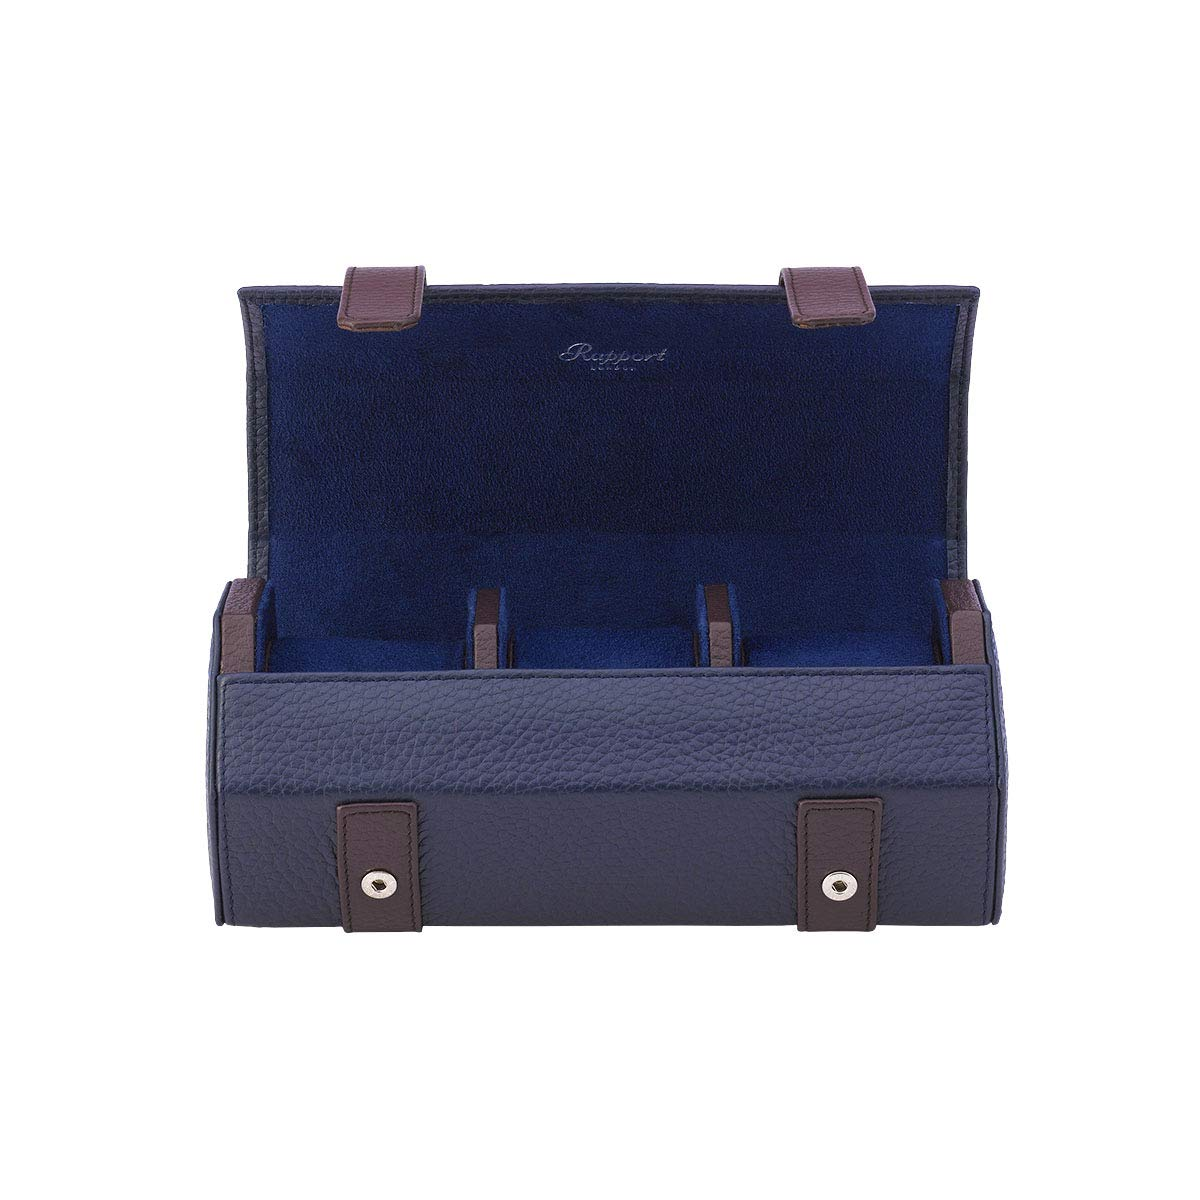 Rapport HydePark Hexagonal Three Watch Roll - Navy Blue